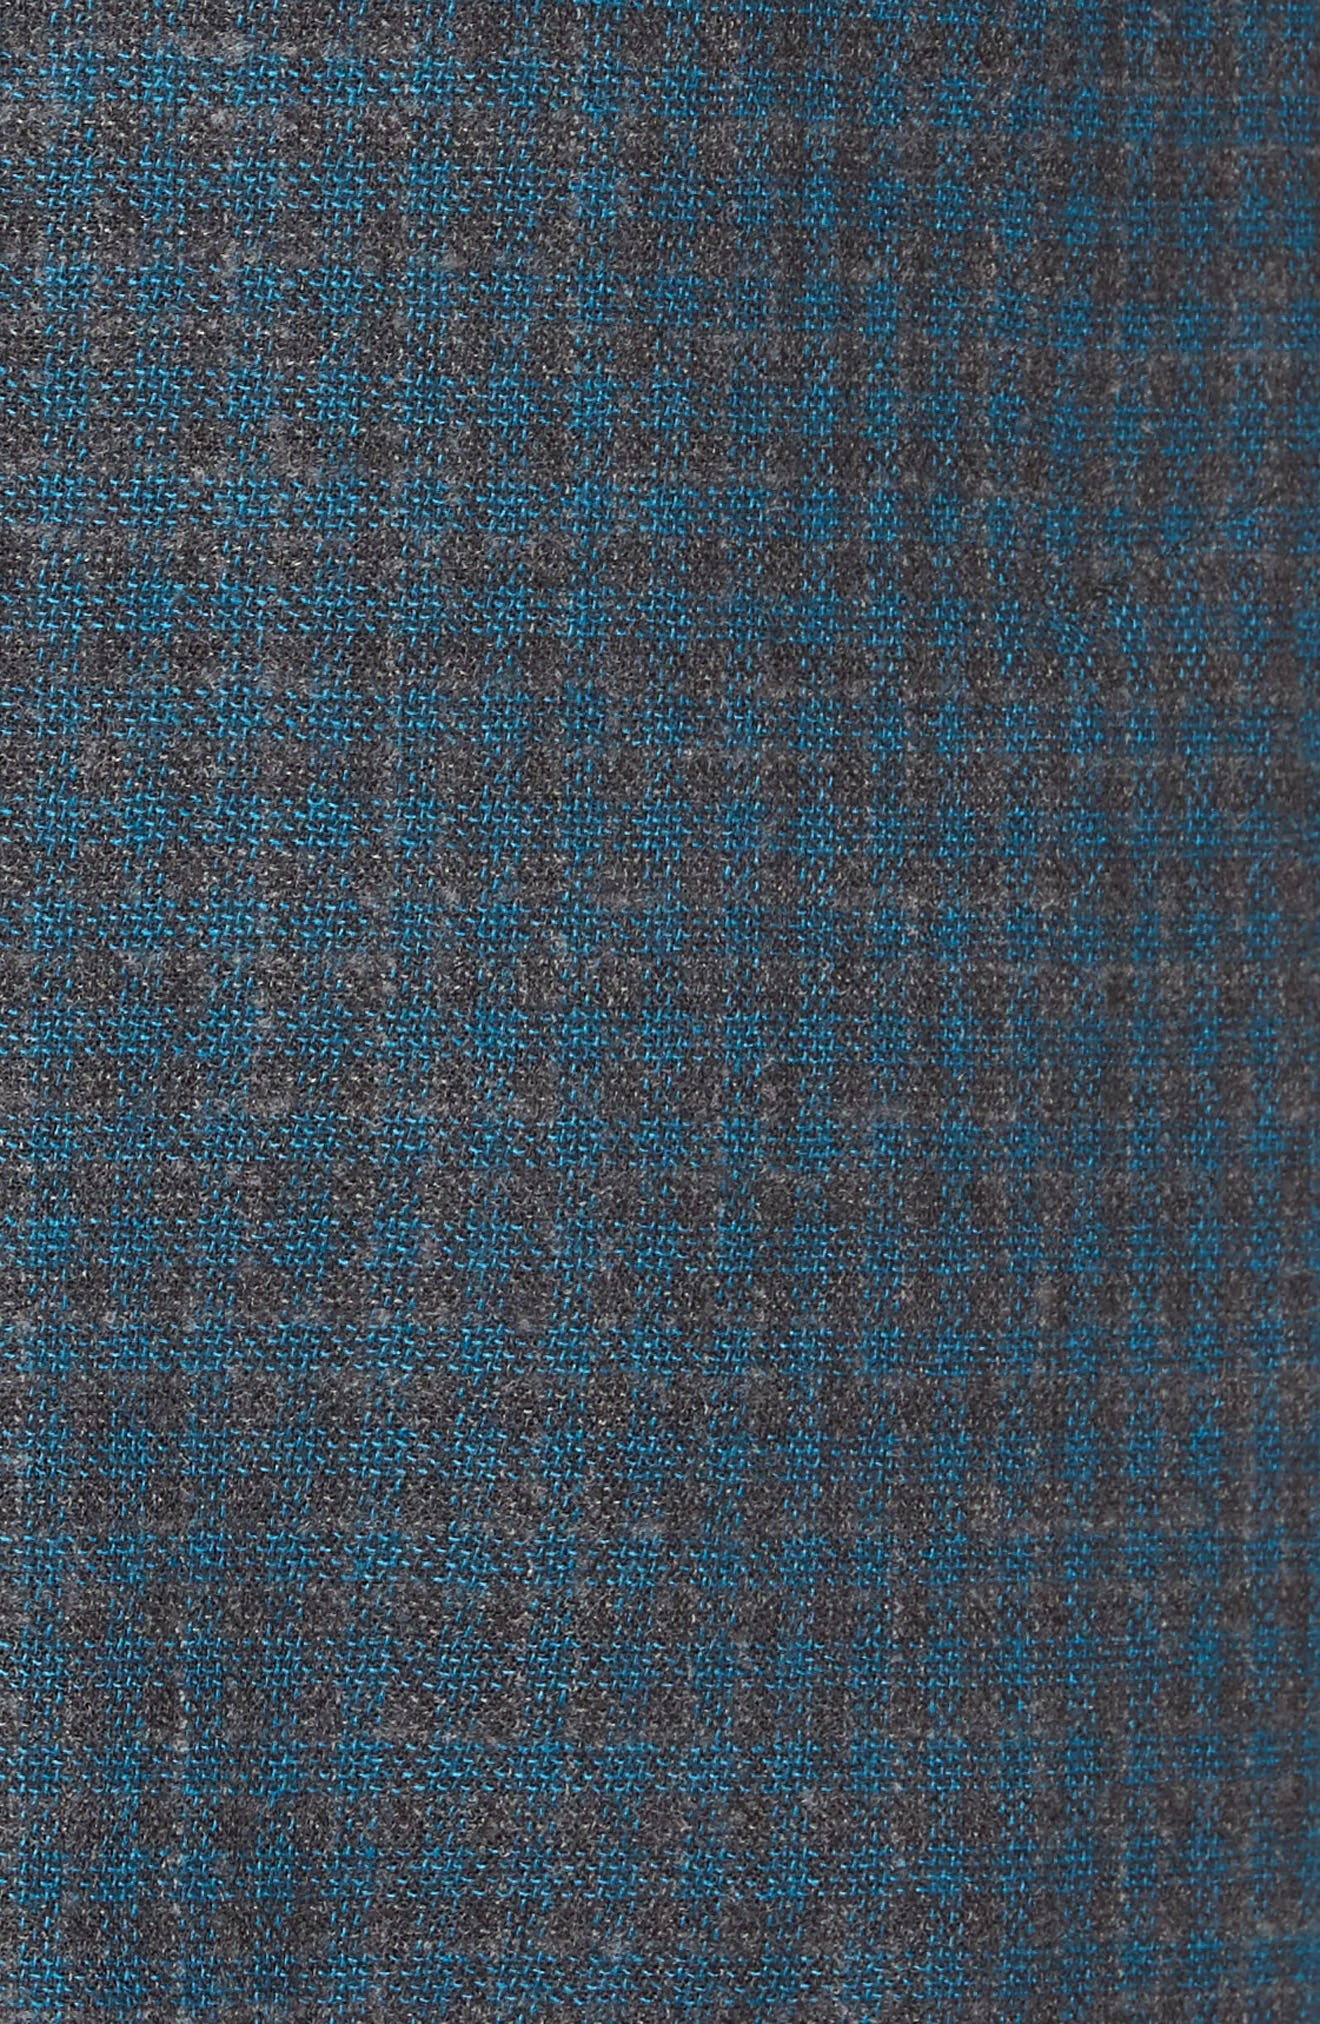 Jetsetter Slim Fit Unconstructed Blazer,                             Alternate thumbnail 6, color,                             TEAL AND GREY PLAID